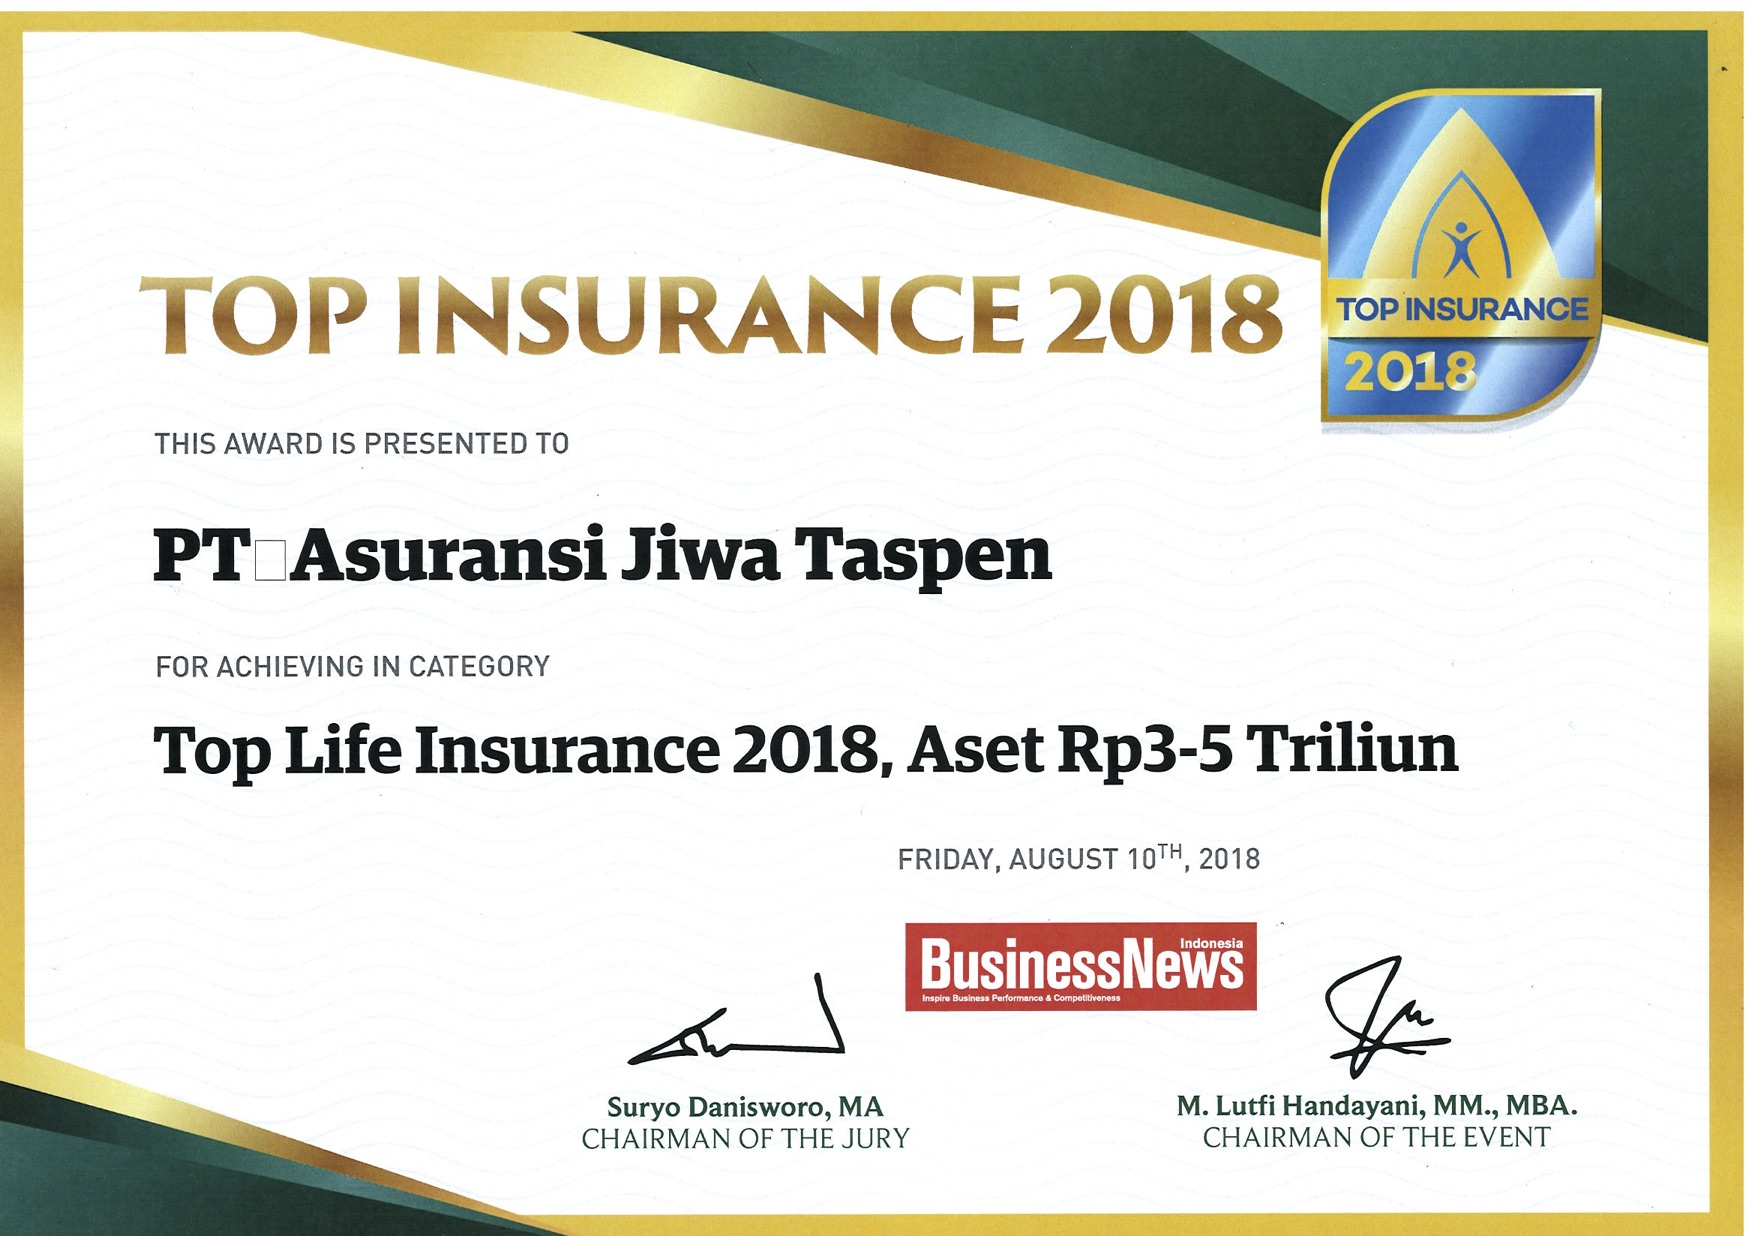 Top Life Insurance 2018 - Business Review